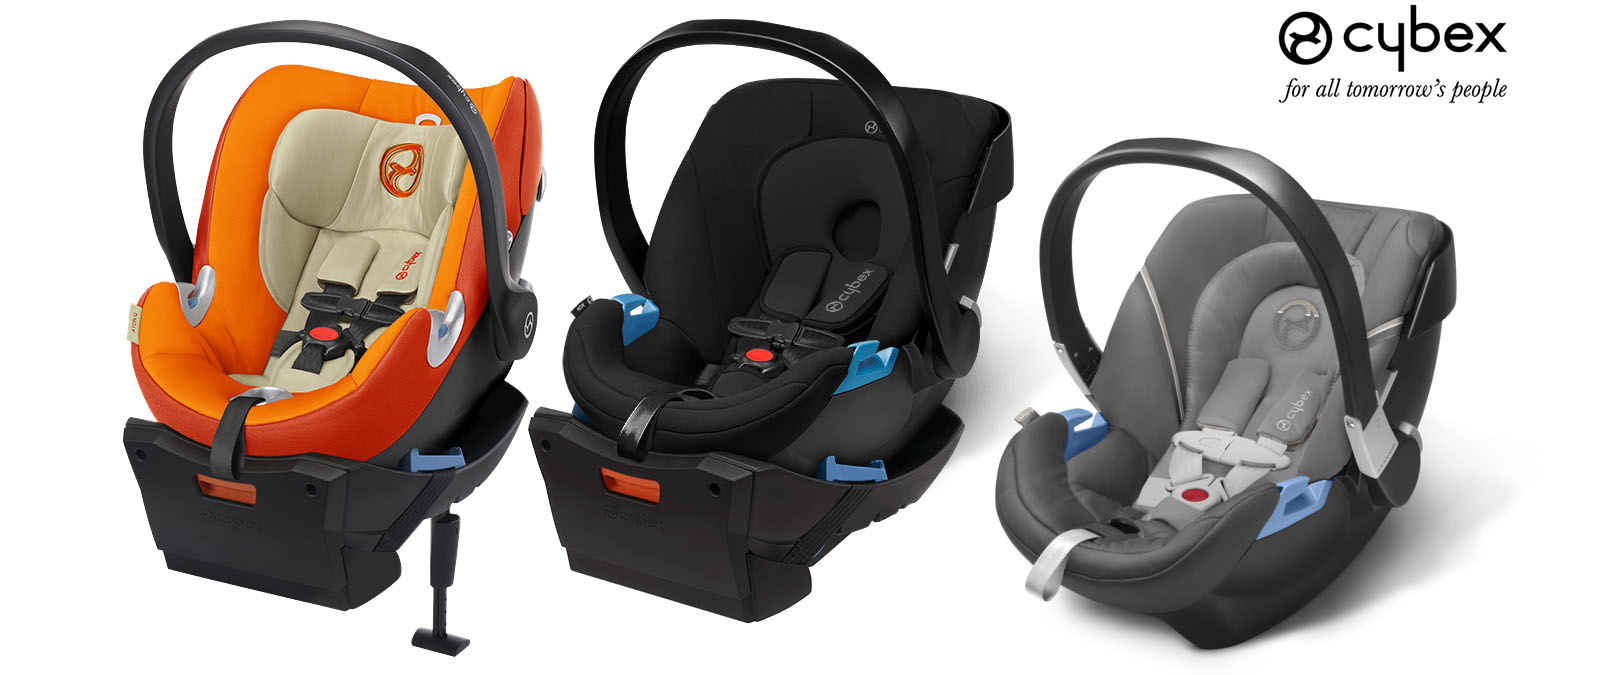 Infant Seat Vs Safety Seat Cybex Car Seat Reviews Innovation For Infants Kid